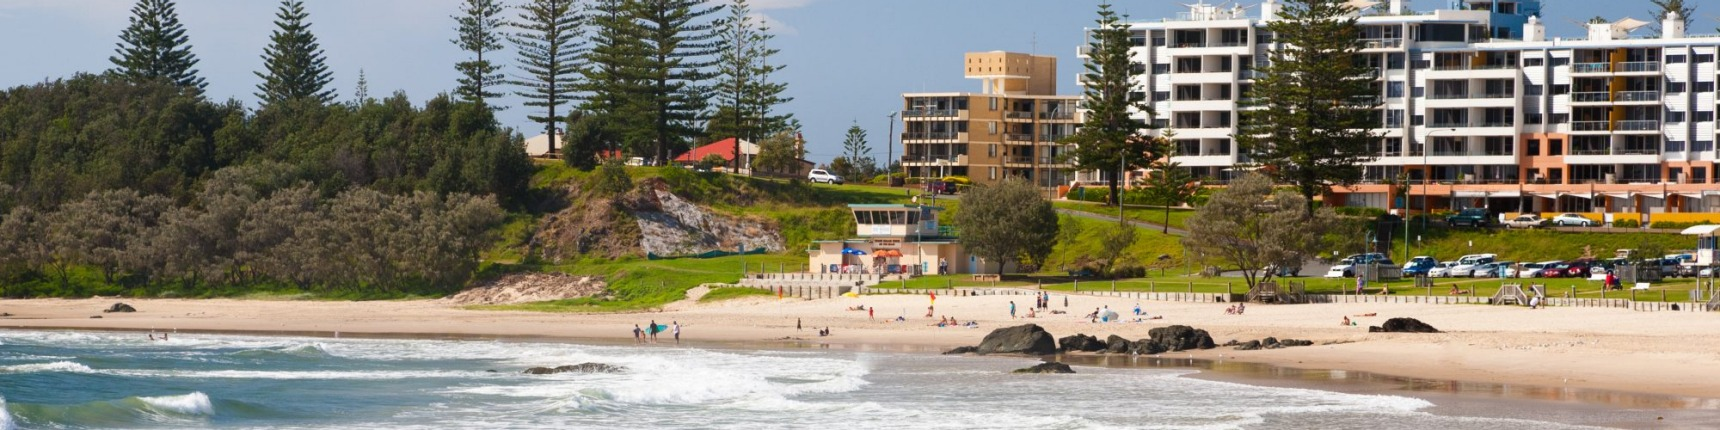 Port Macquarie, beach, coastline